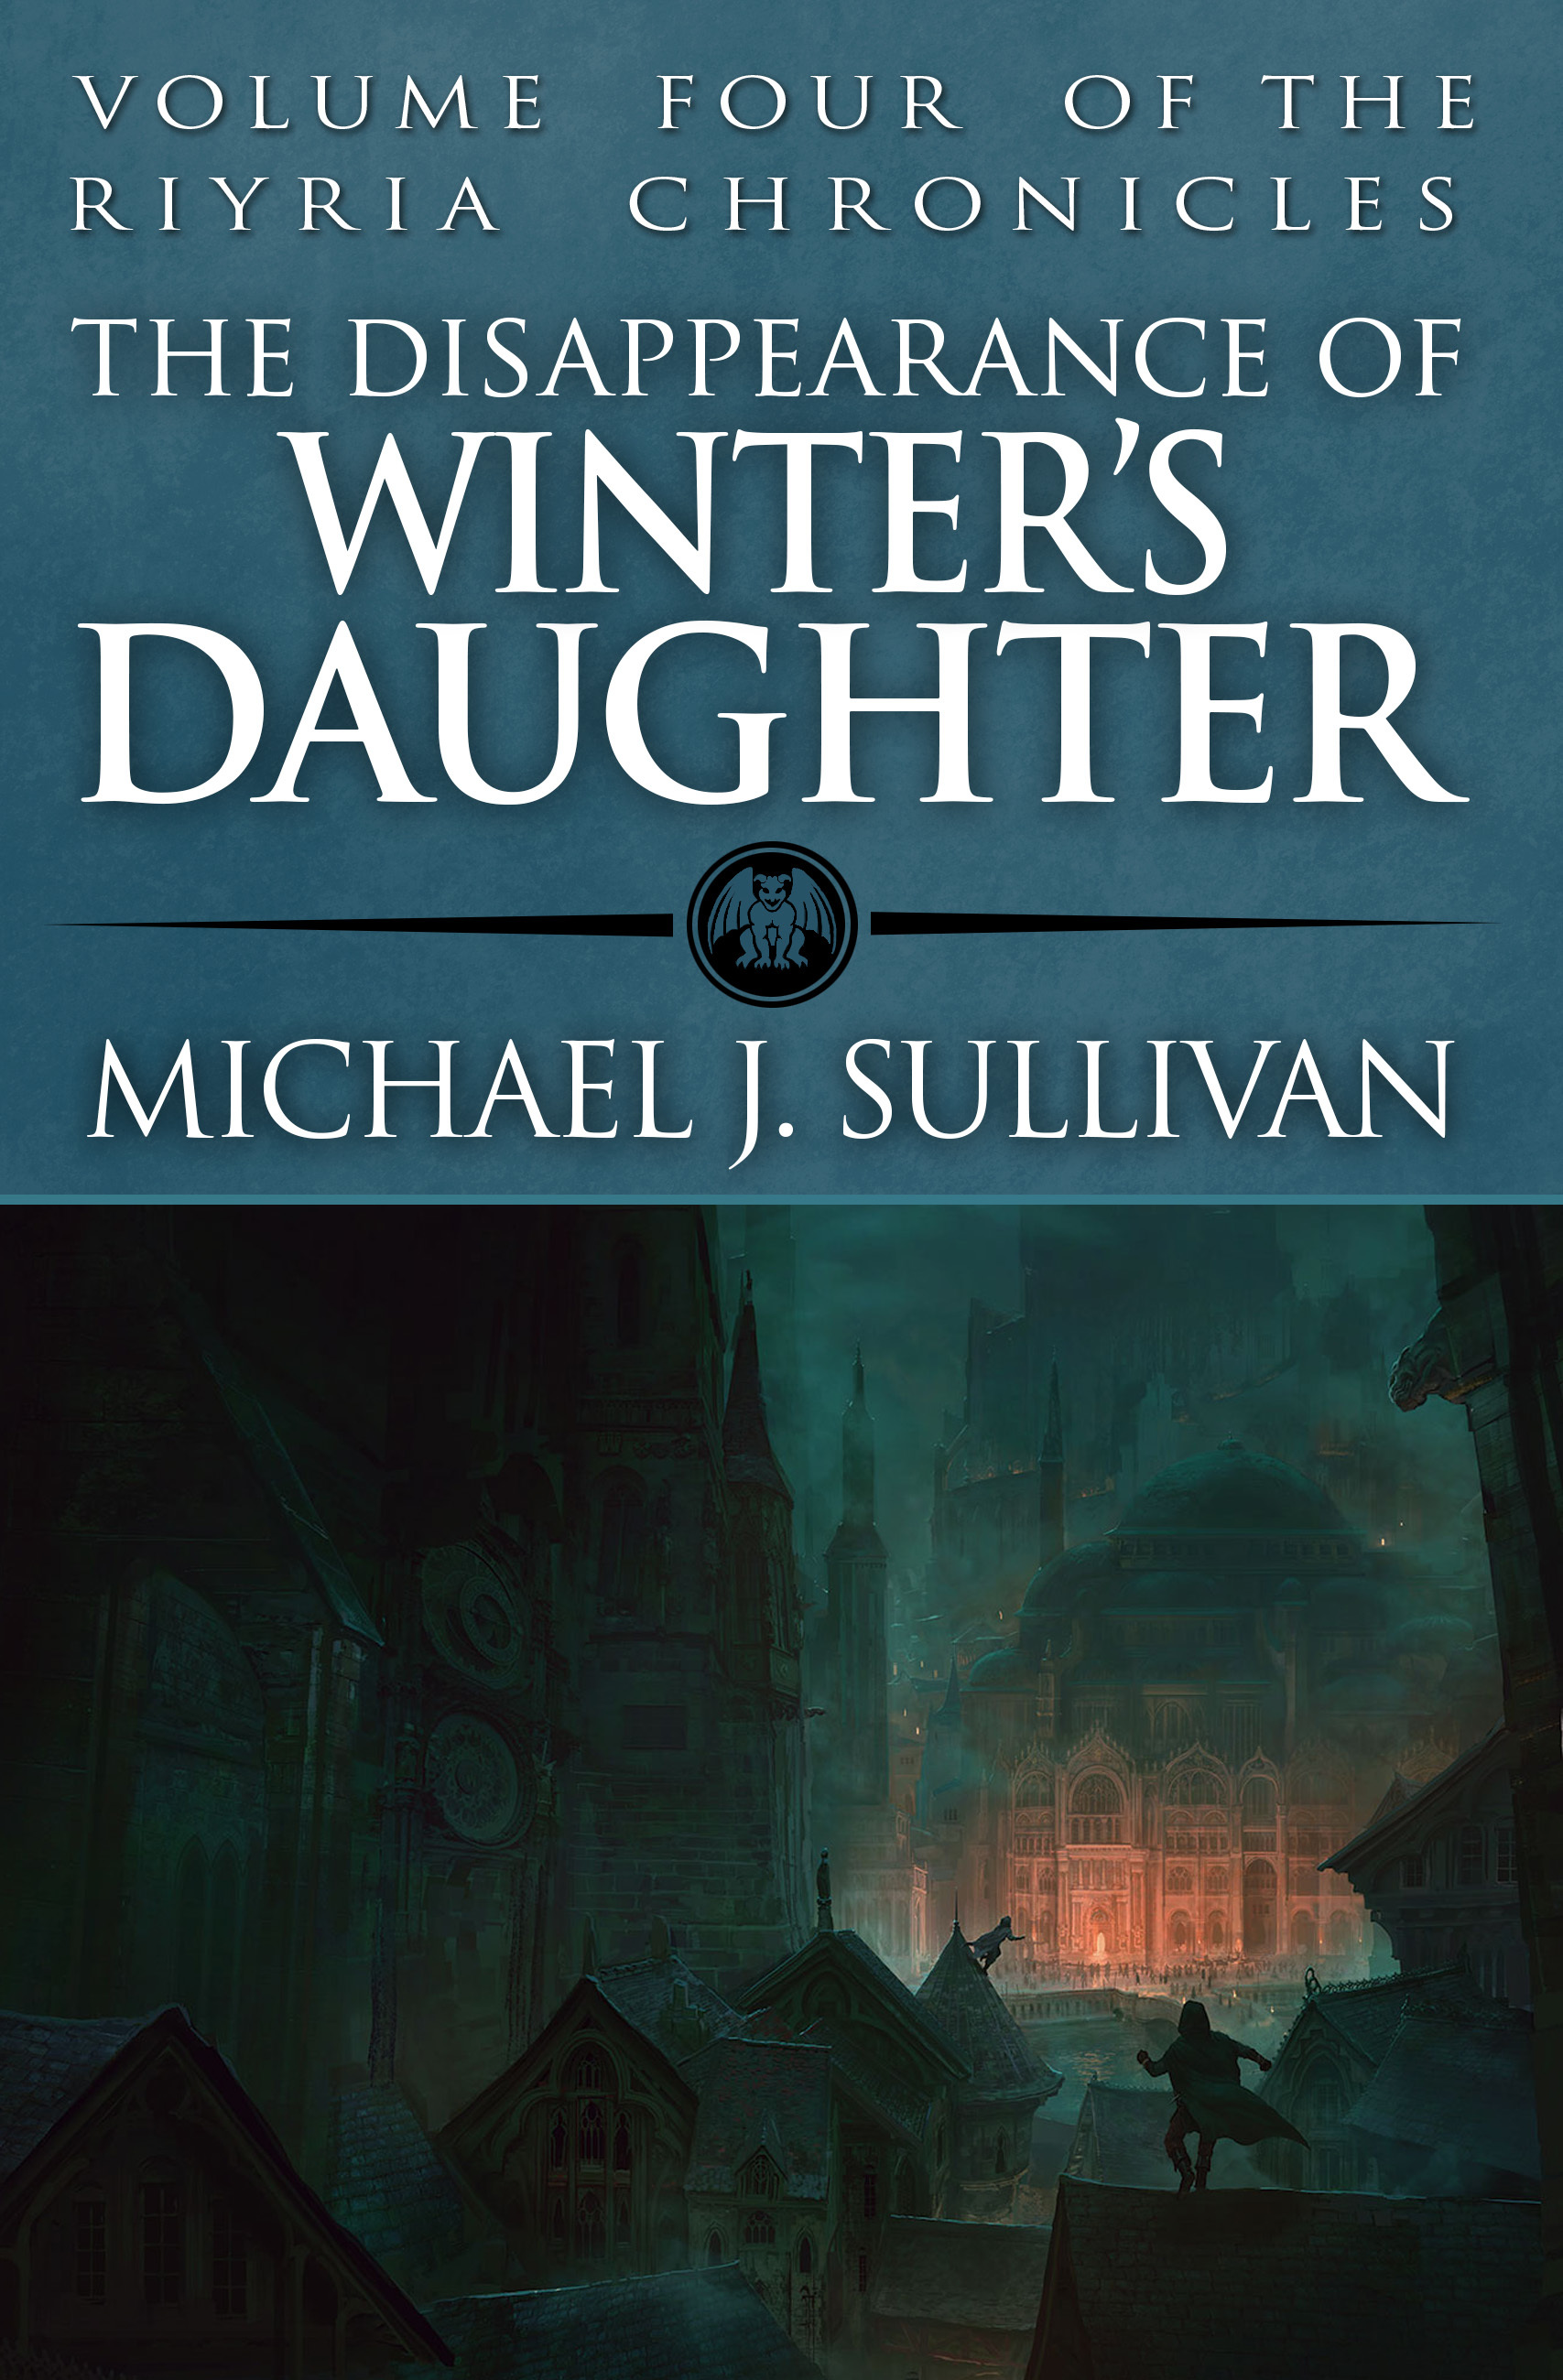 The Disappearance of Winter's Daughter